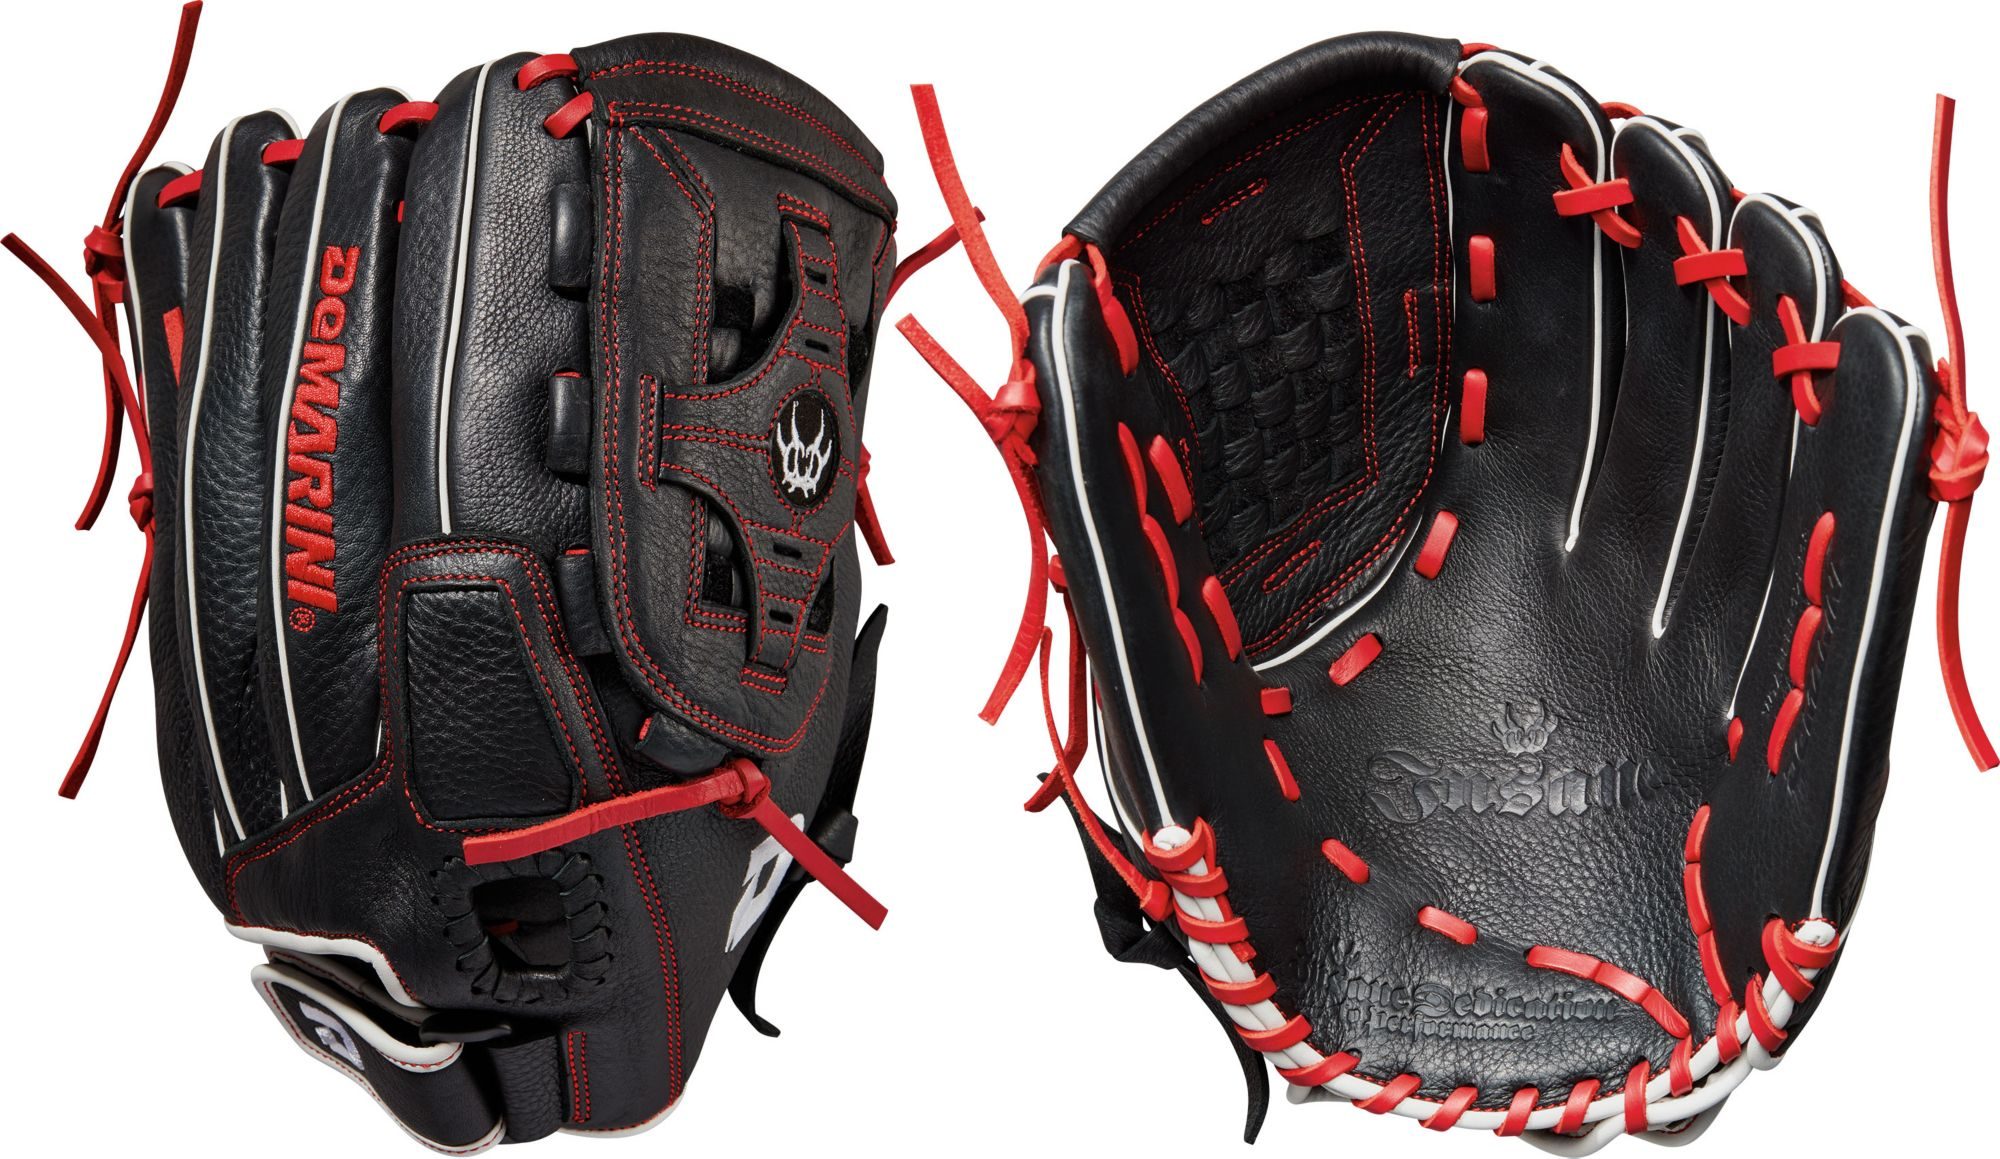 Slow pitch softball gloves for adults dicks sporting goods product image demarini 13 insane series slow pitch glove 2017 sciox Choice Image